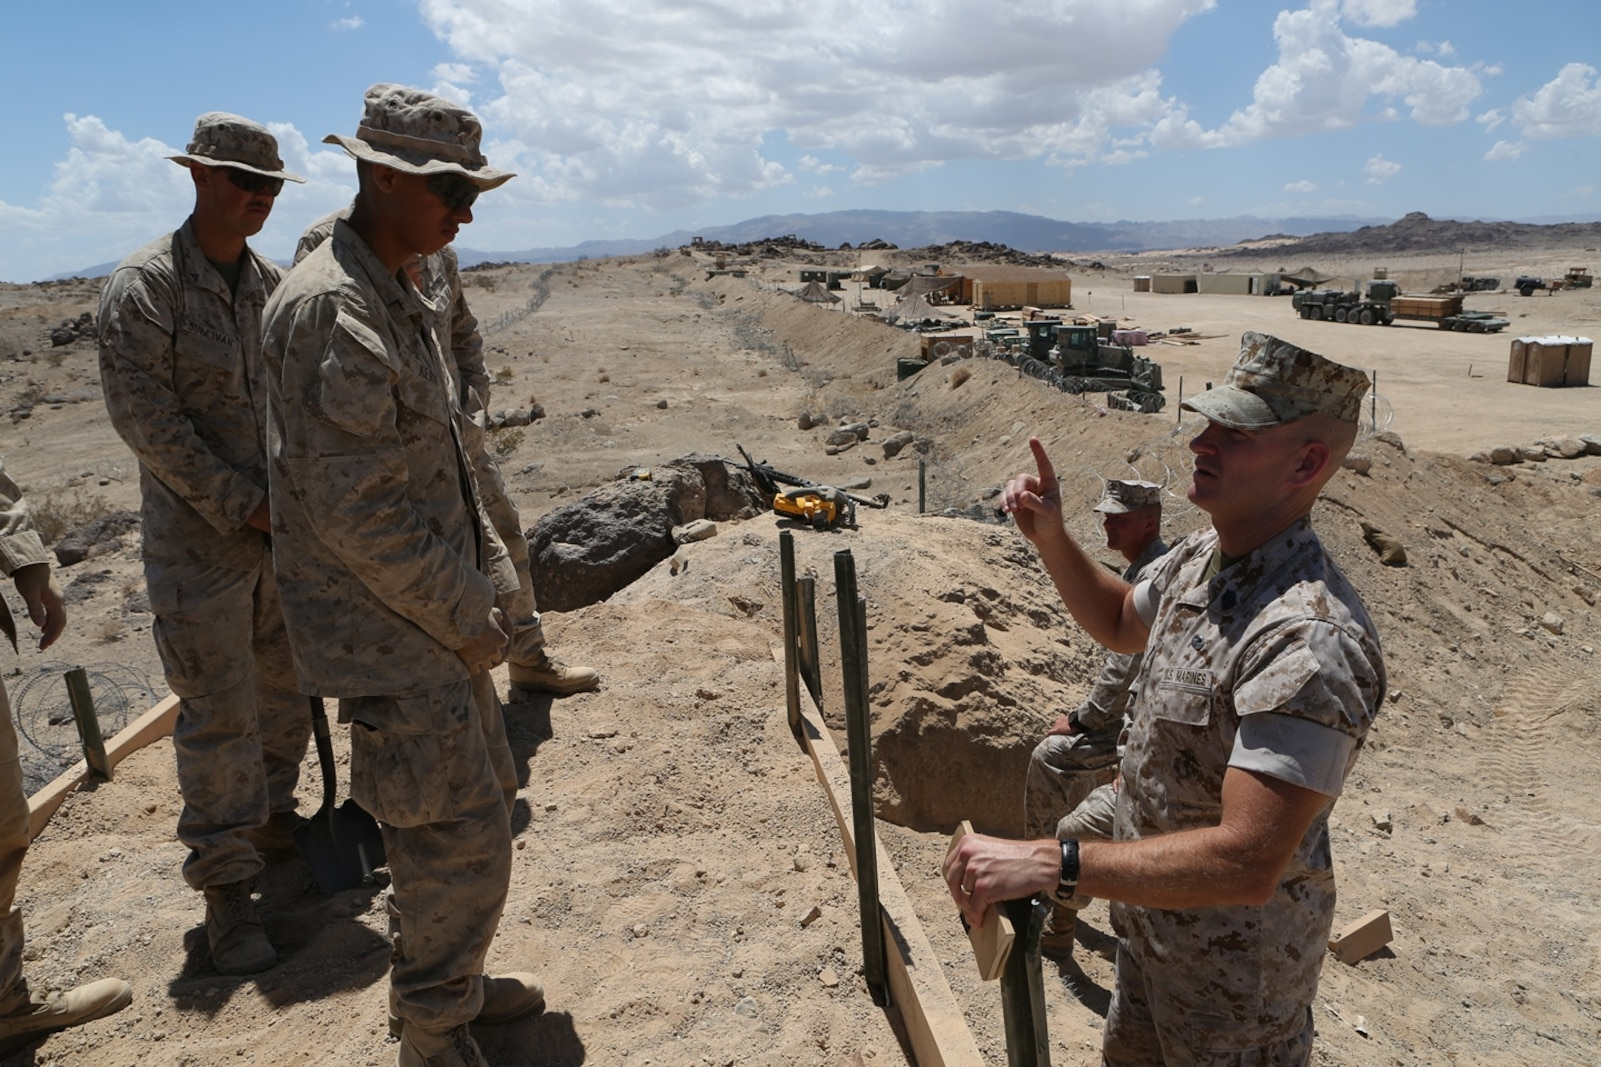 U.S. Marine Sgt. Maj. Troy E. Black speaks to Combat Logistics Battalion 7, Combat Logistics Regiment 1, 1st Marine Logistics Group Marines participating in Integrated Training Exercise 5-16 at Marine Corps Air Ground Combat Center Twentynine Palms, Calif. Aug. 12, 2016. Black is the 1st MLG sergeant major. The MLG commanding general, sergeant major, and command master chief visited the combat center to speak with unit commanders as well as engage junior Marines and non-commissioned officers to get a sense of how MLG units are doing and what areas could be improved upon. (U.S. Marine Corps photo by Sgt. Carson Gramley/released)